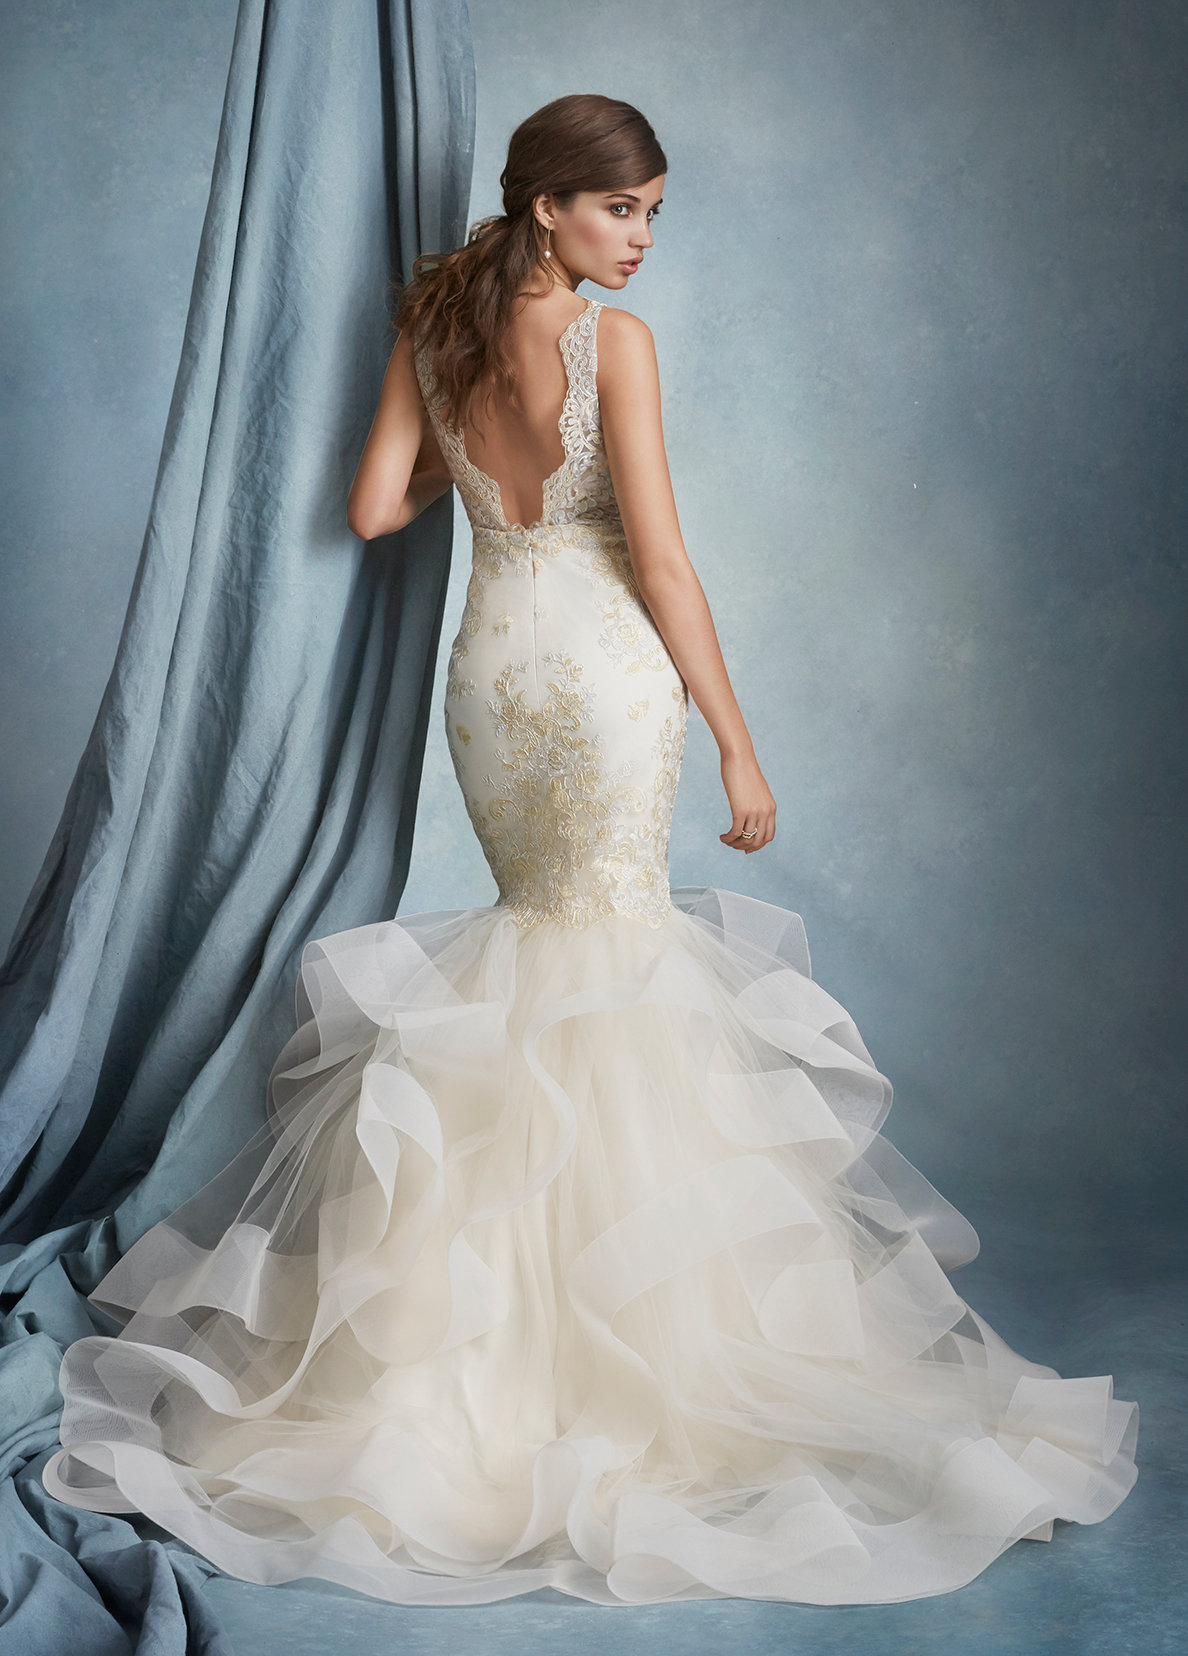 Bridal Gowns and Wedding Dresses by JLM Couture - Style 2608